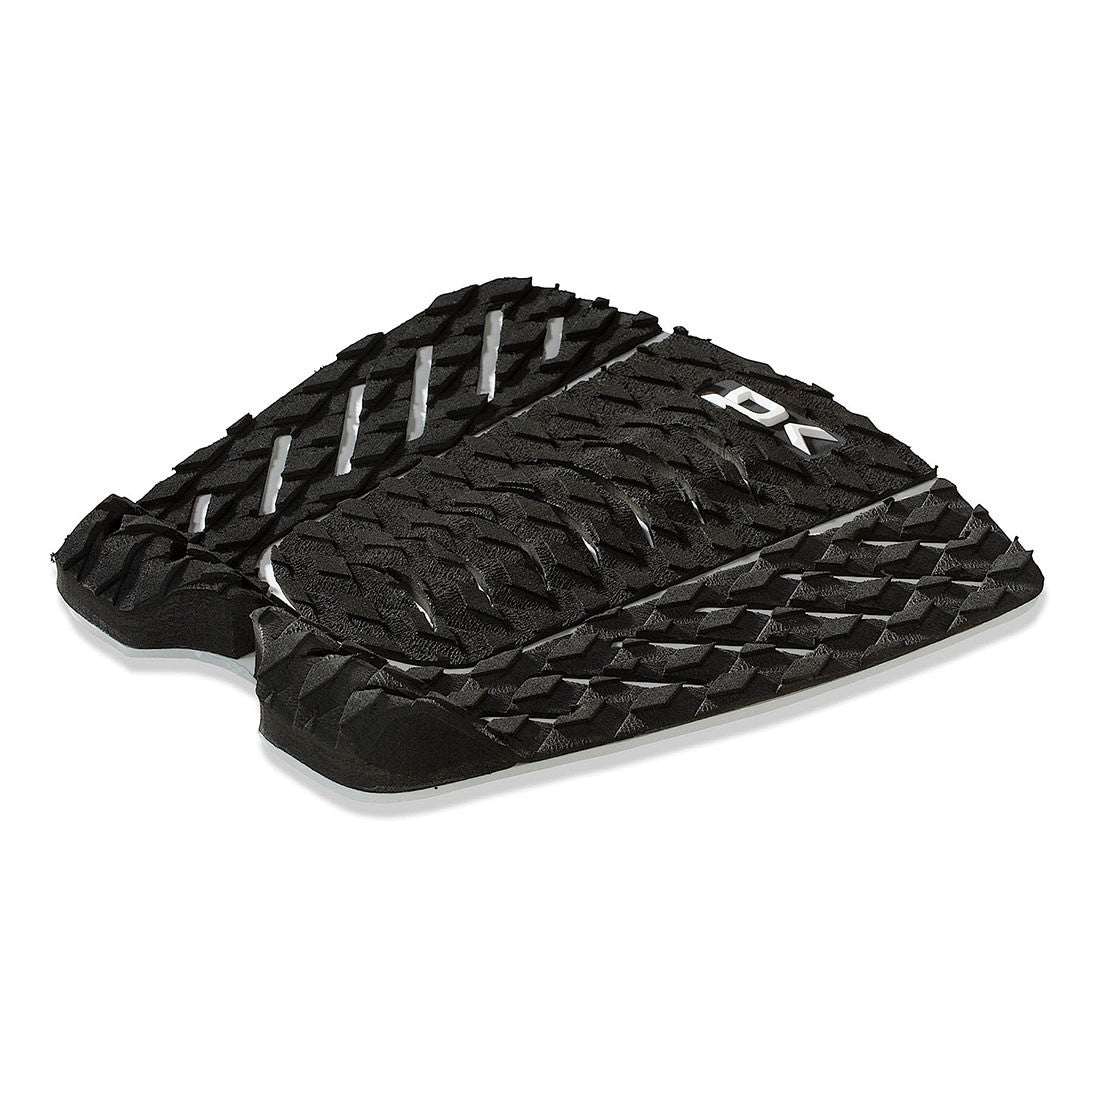 Dakine Superlite Surfboard Traction Pad (Black)